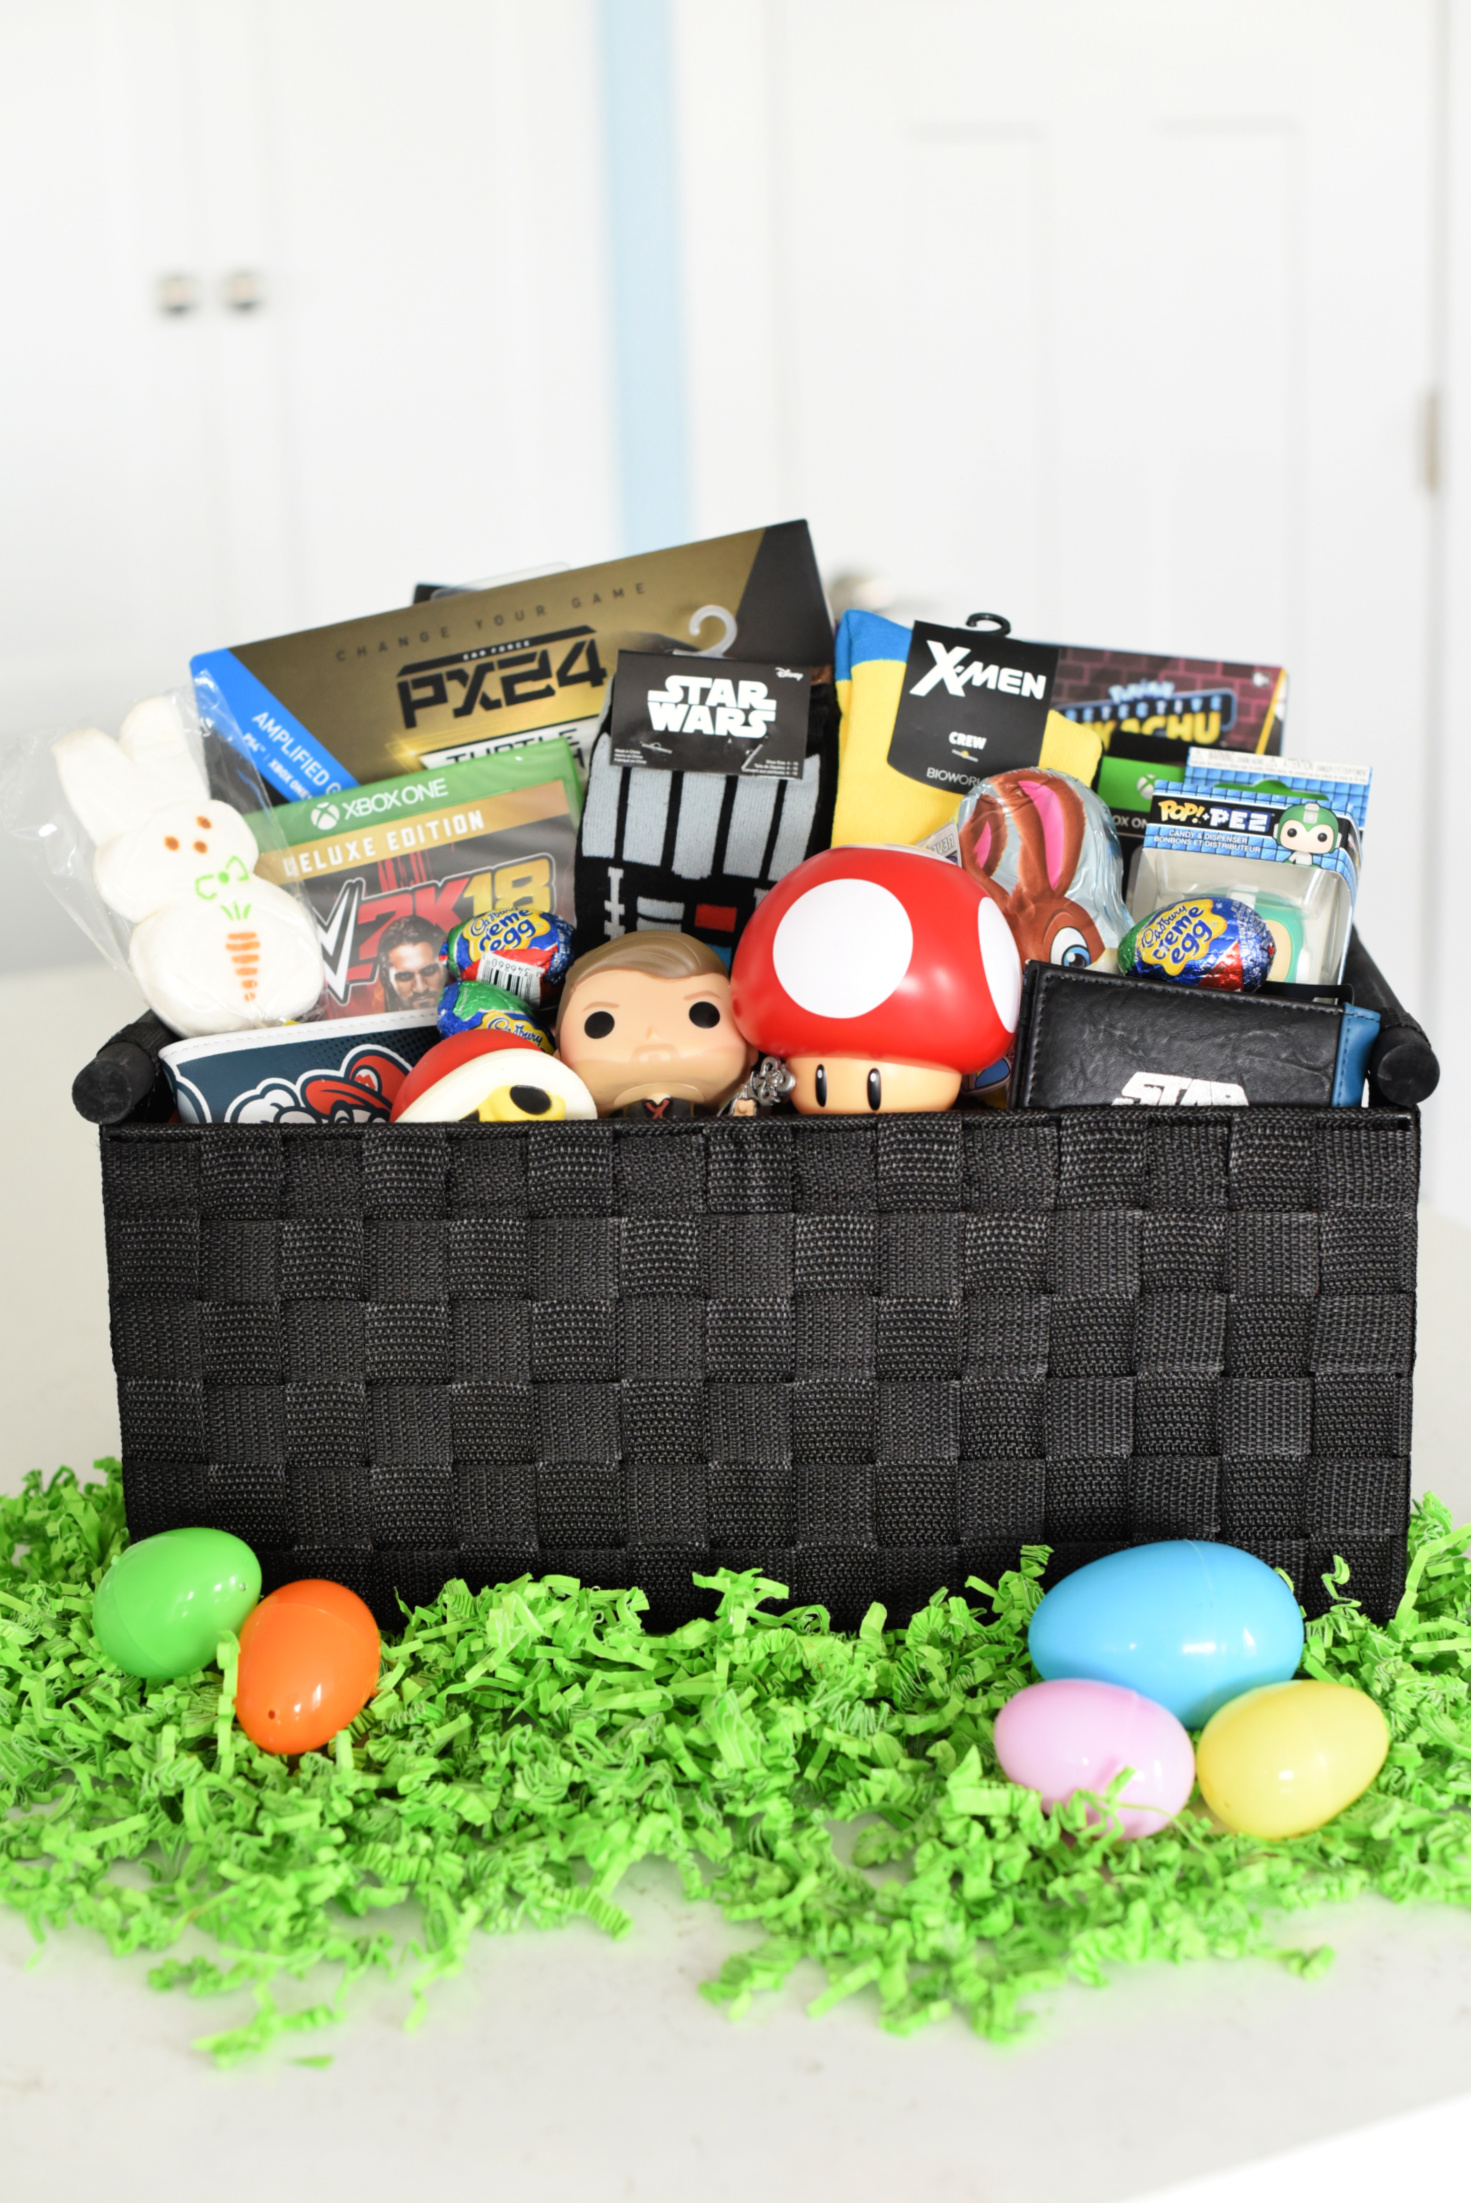 Fun Easter Basket Ideas for Boys